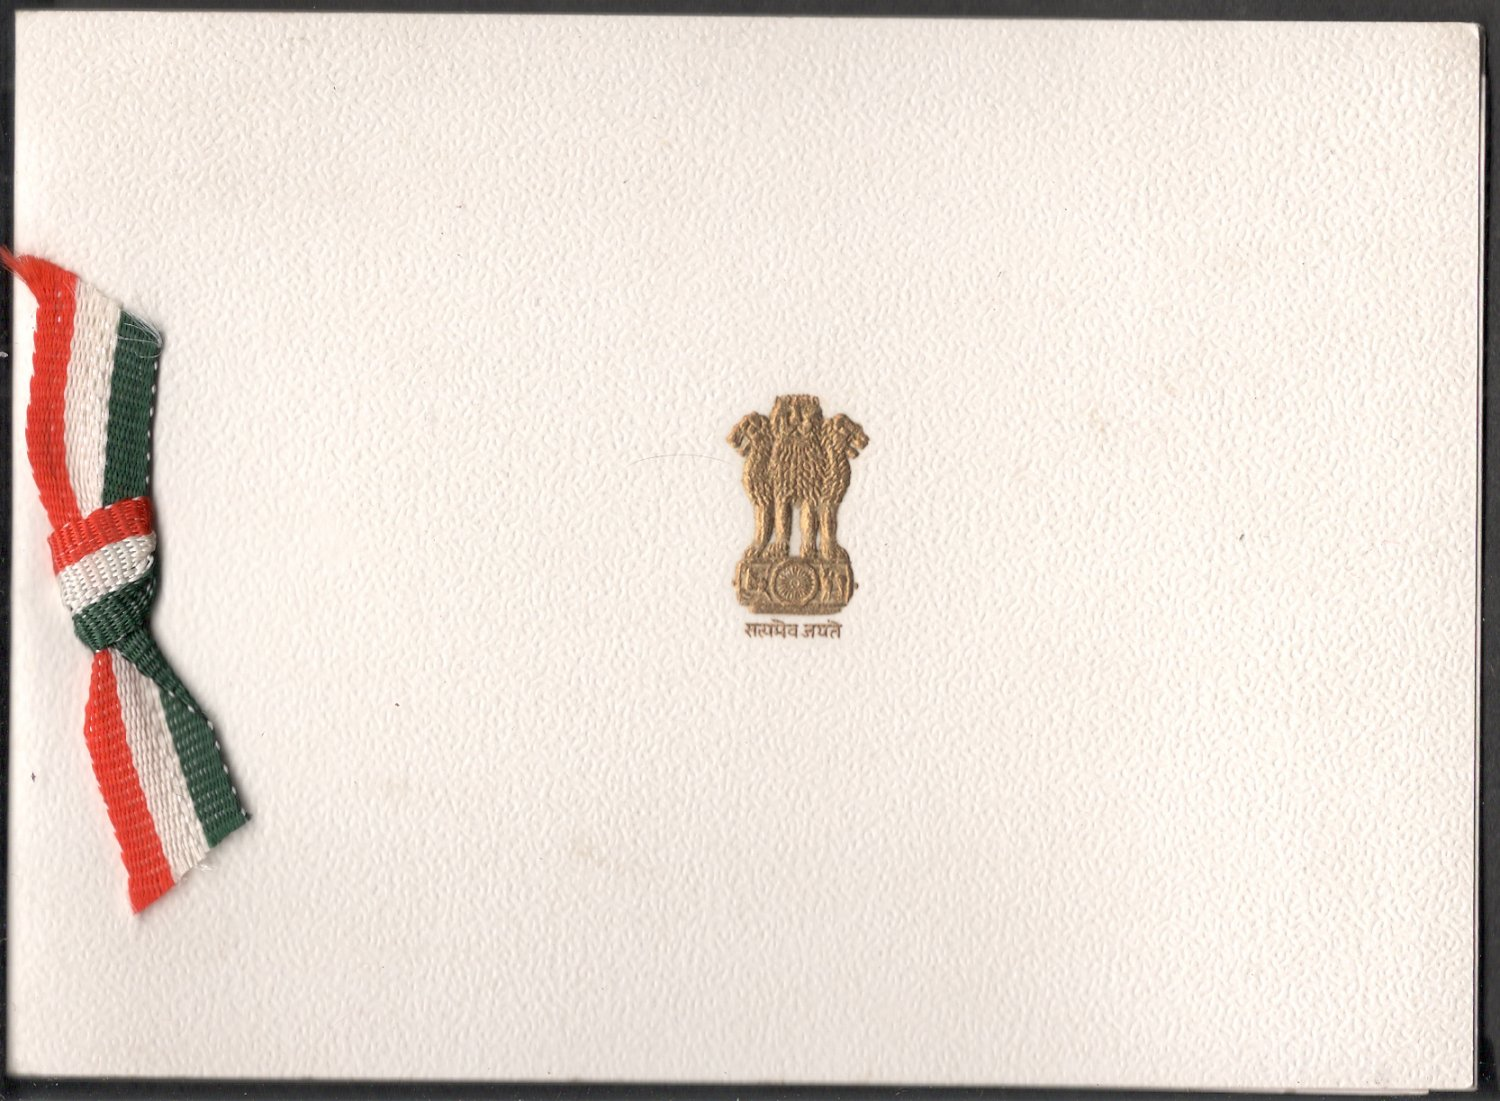 VINTAGE GOVERMENT HOUSE INDIA SEASON'S GREETINGS (CARD) USED GREETING CARD RARE  1970's